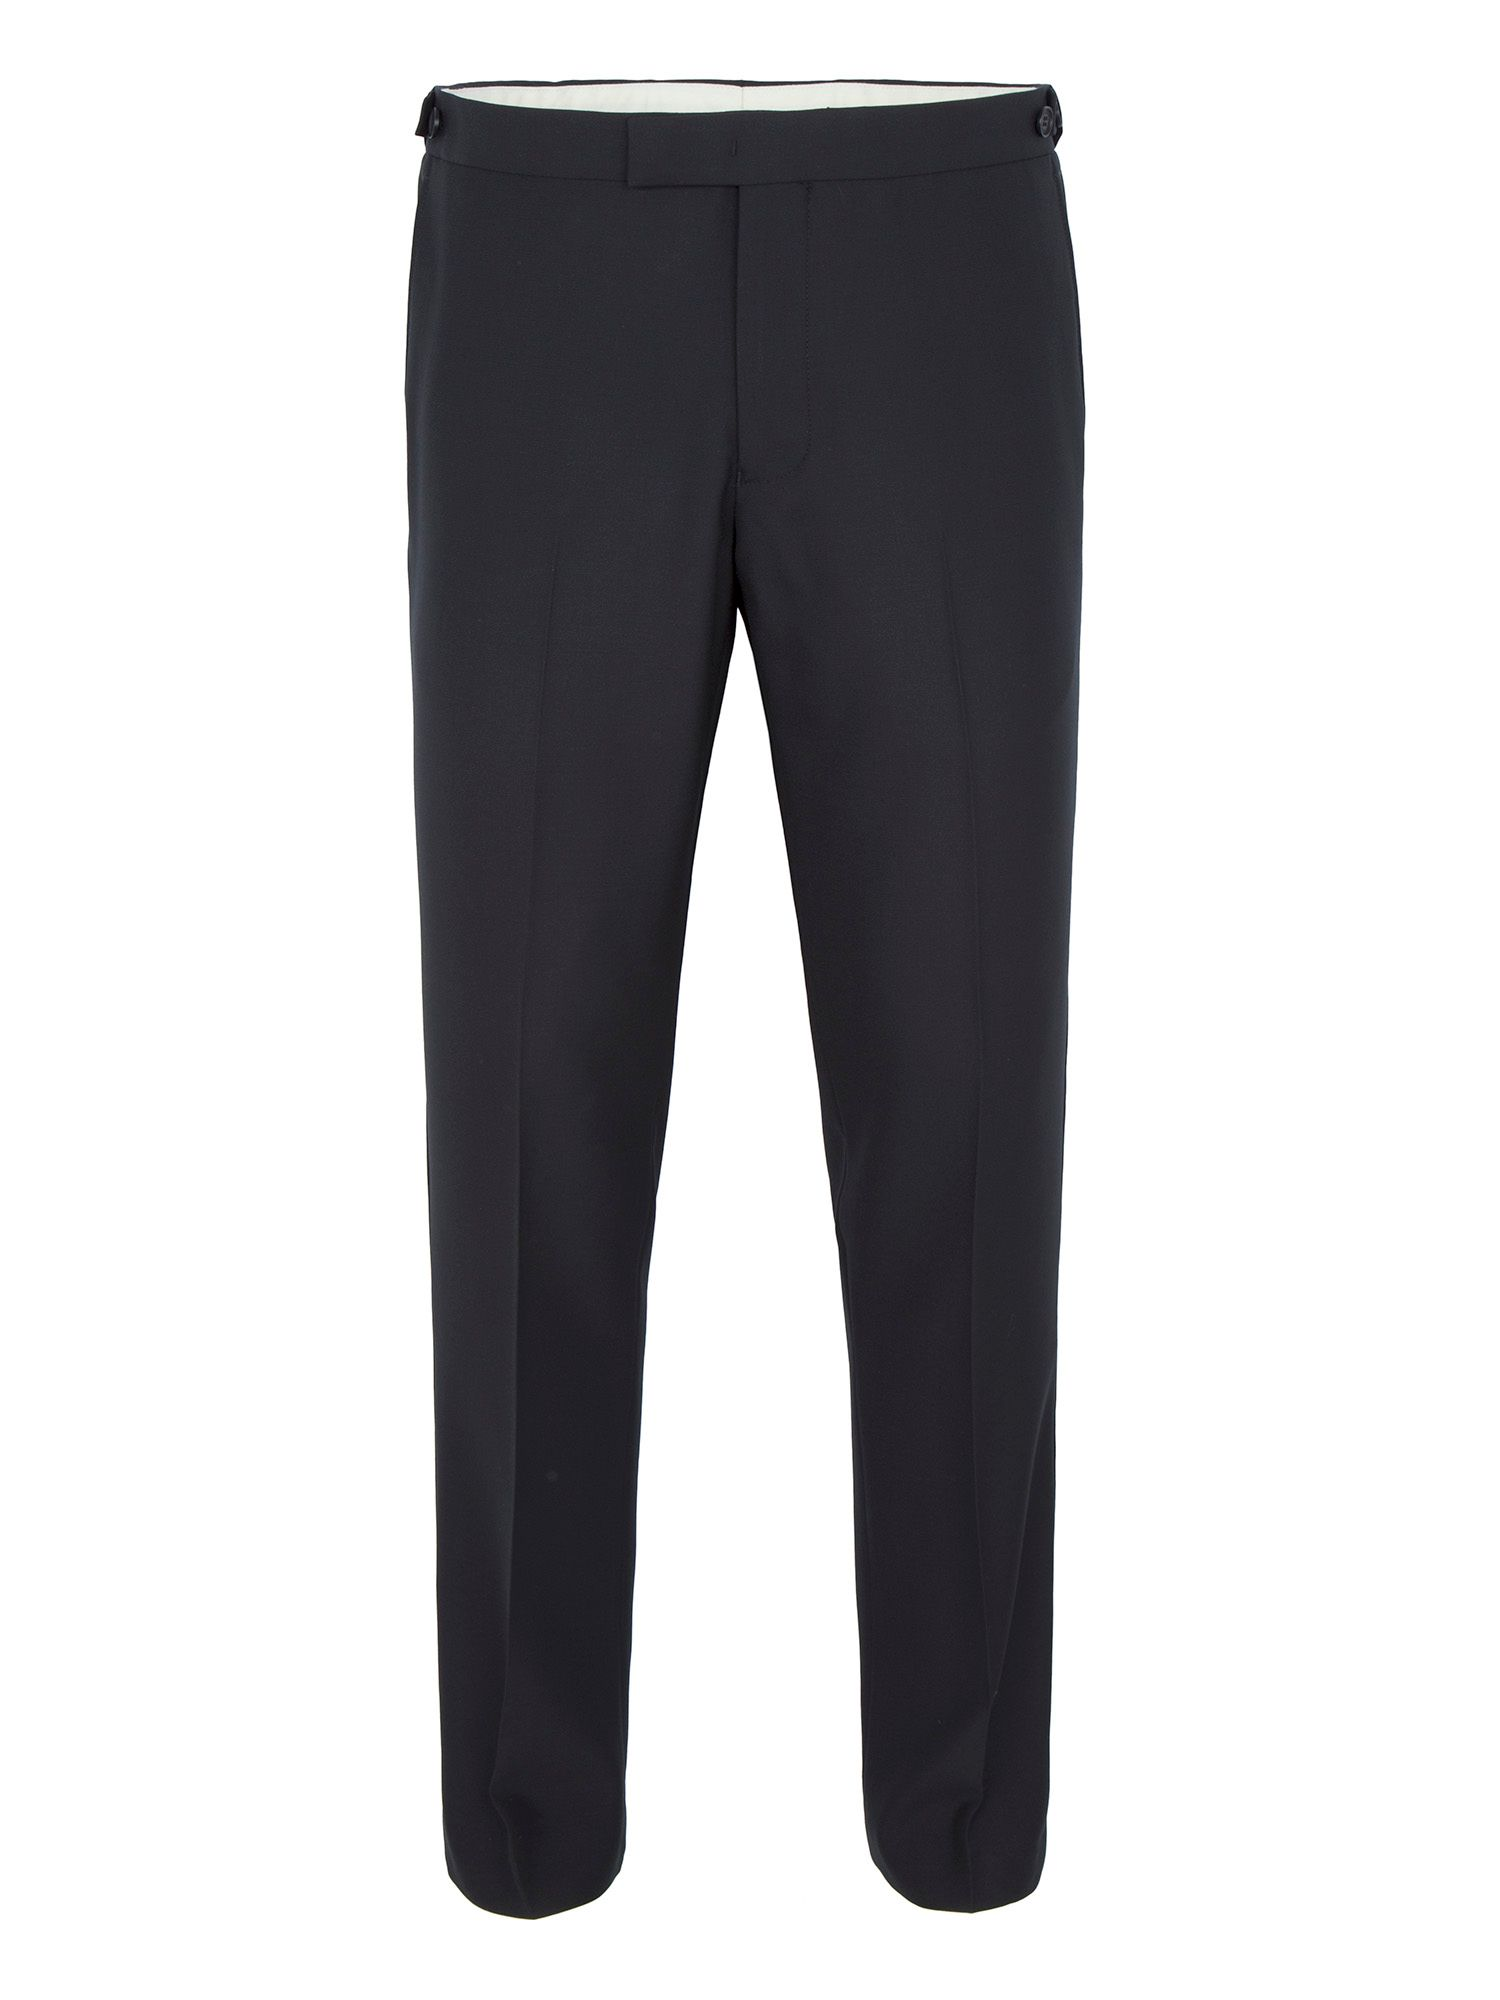 Men's Paul Costelloe Herne Slim-Fit Dinner Suit Trousers, Black